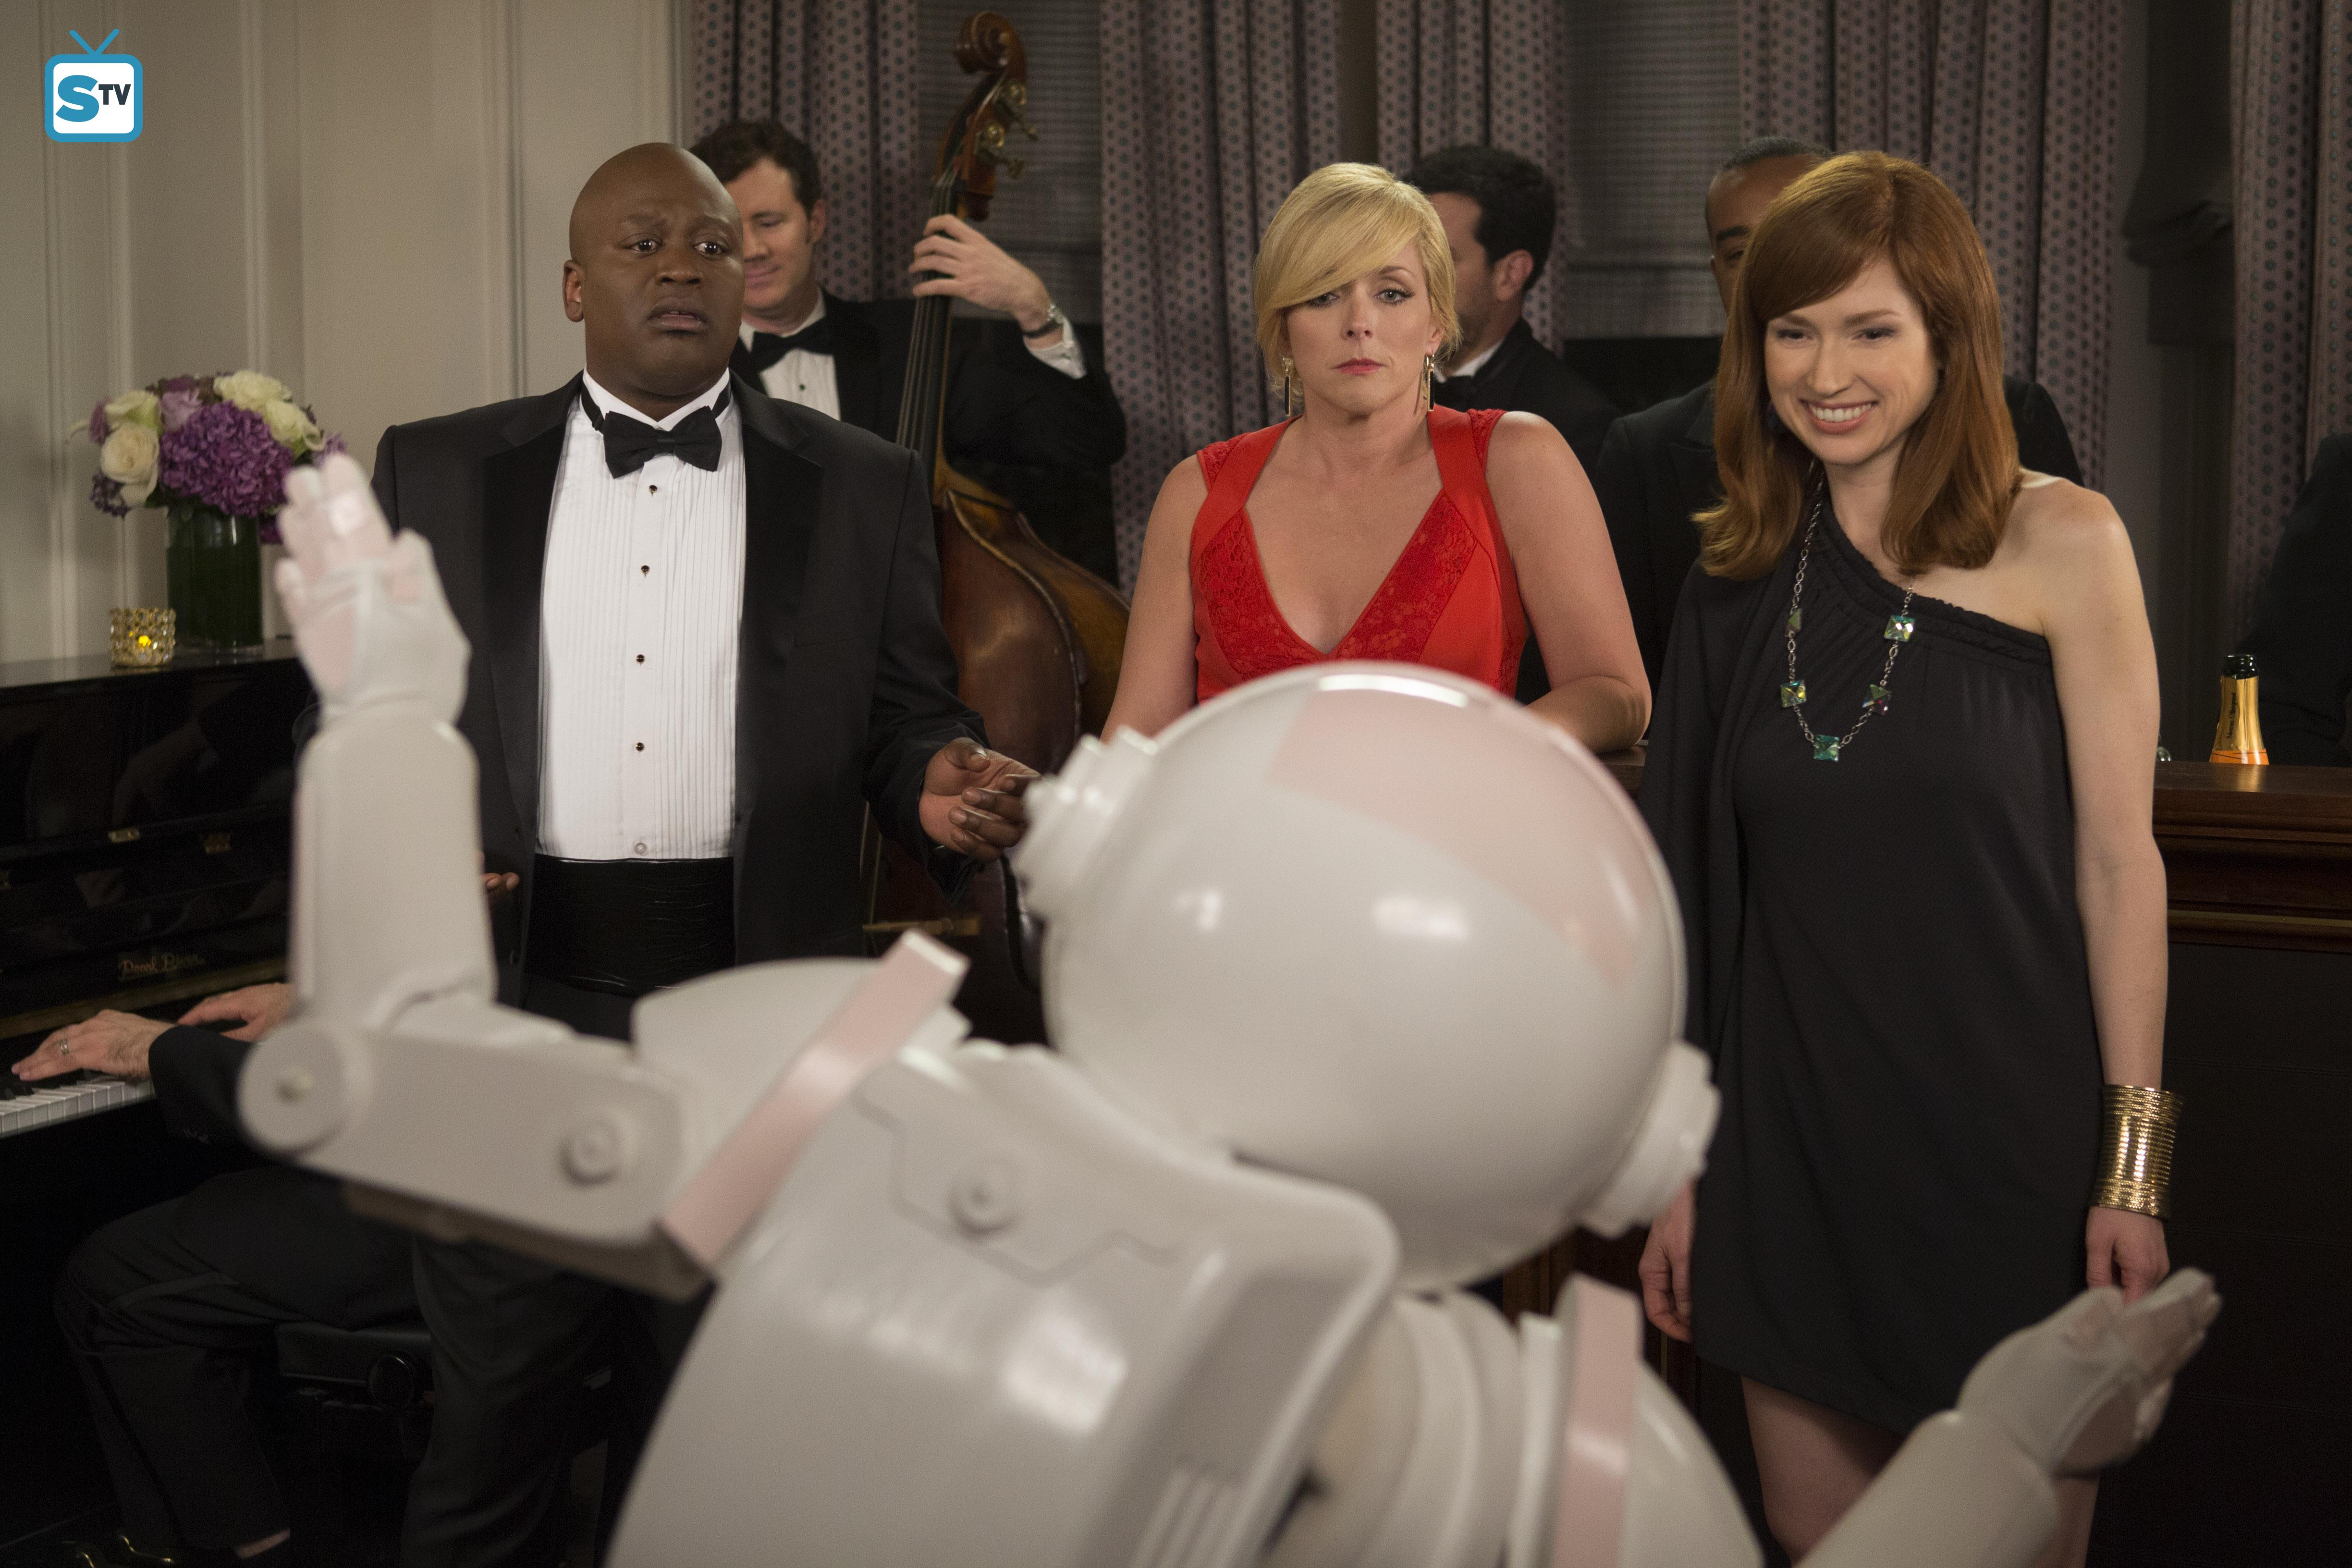 Unbreakable Kimmy Schmidt - Titus, Jacqueline and Kimmy